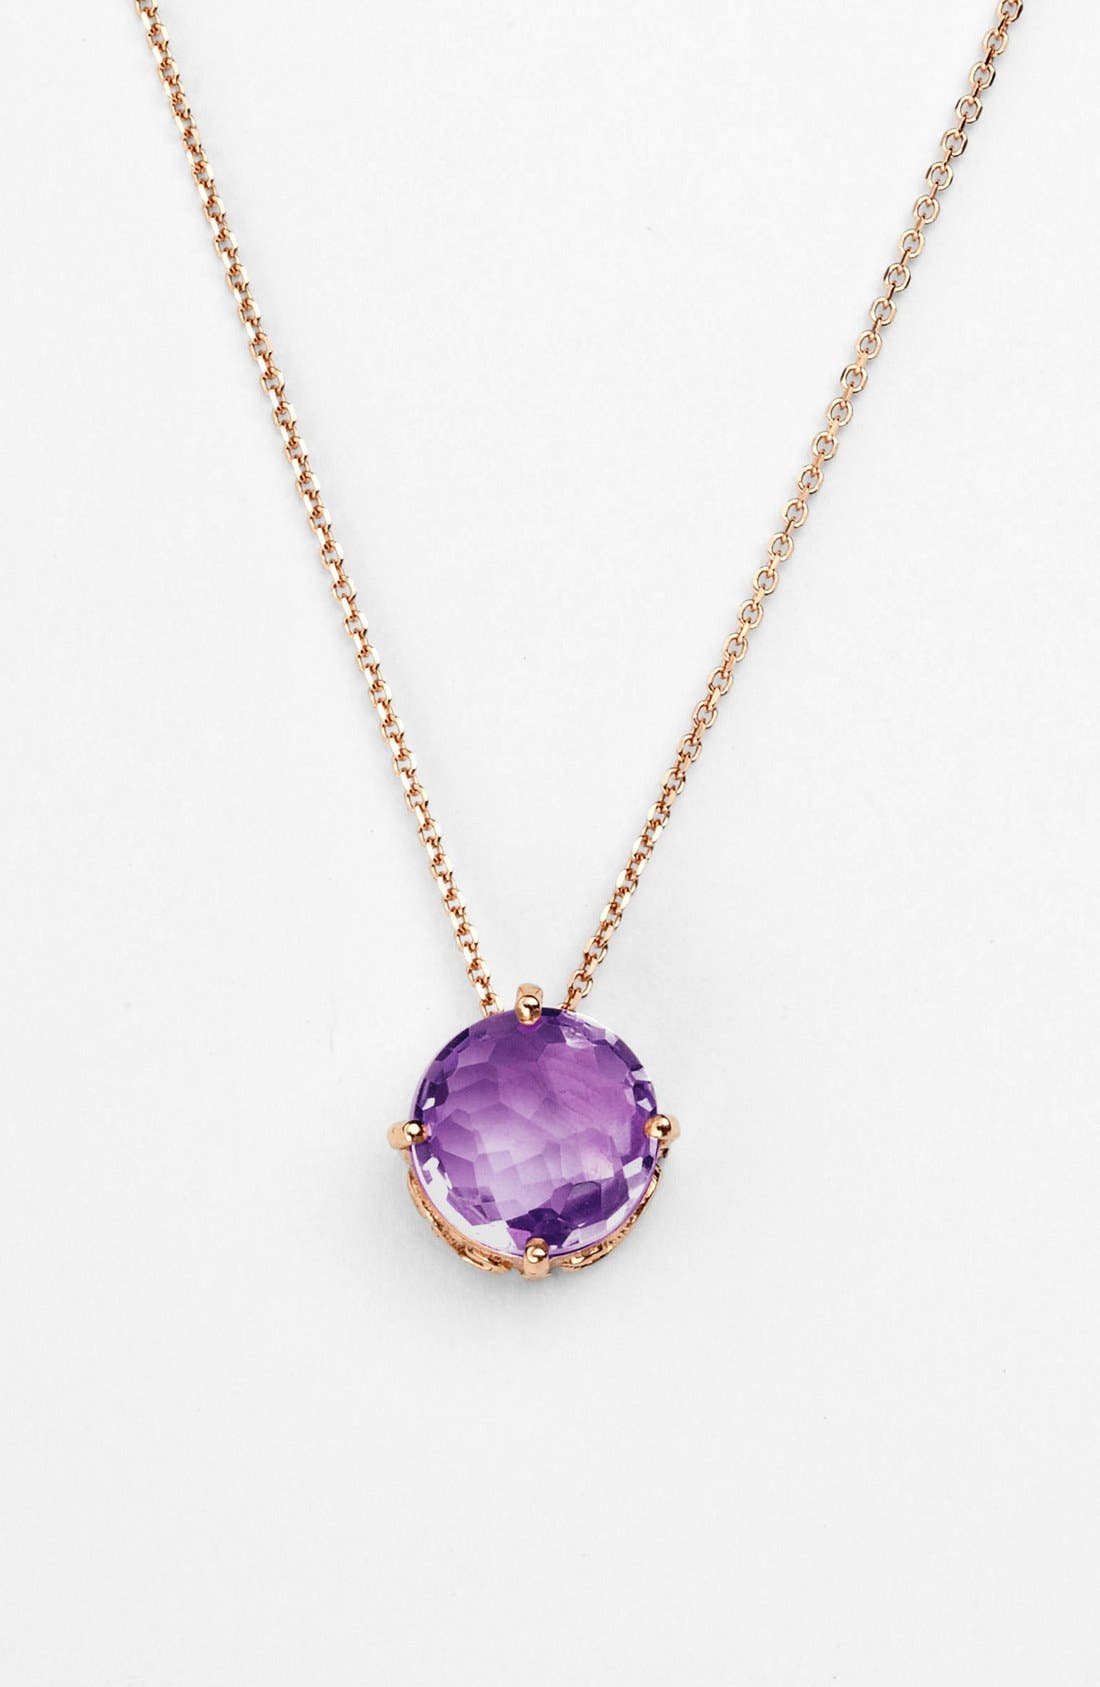 Alternate Image 1 Selected - KALAN by Suzanne Kalan Amethyst Pendant Necklace